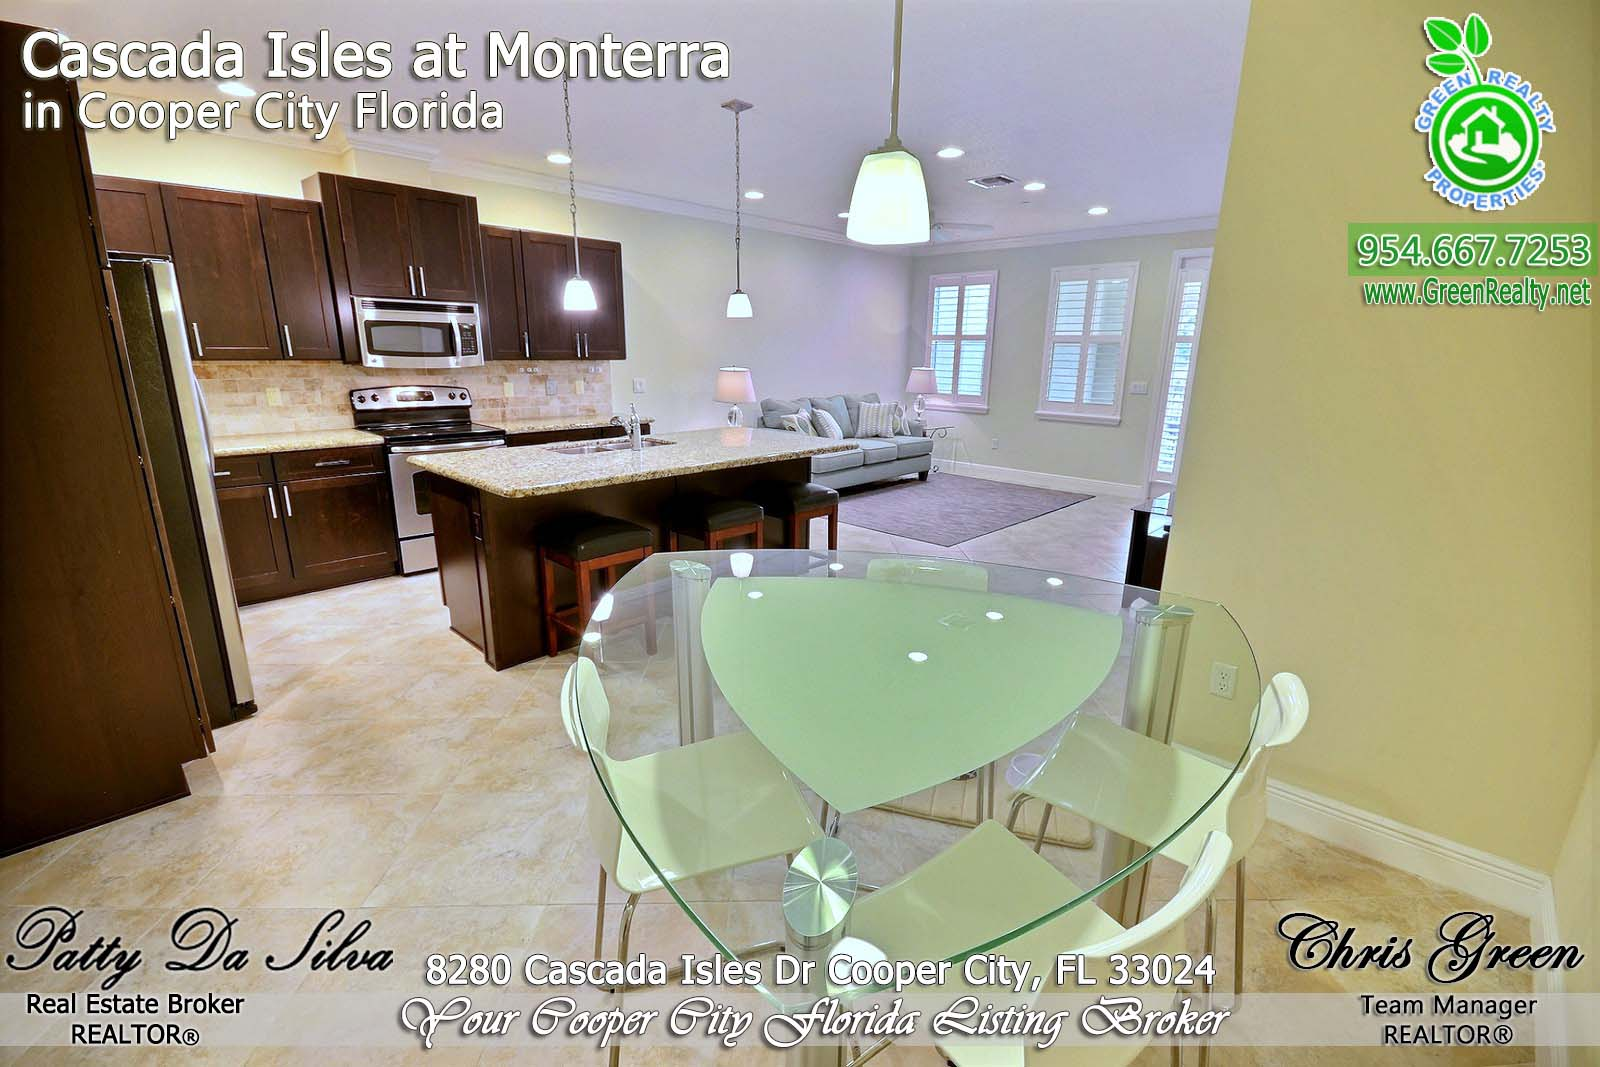 5 Homes For Sale in Cascada Isles (1)